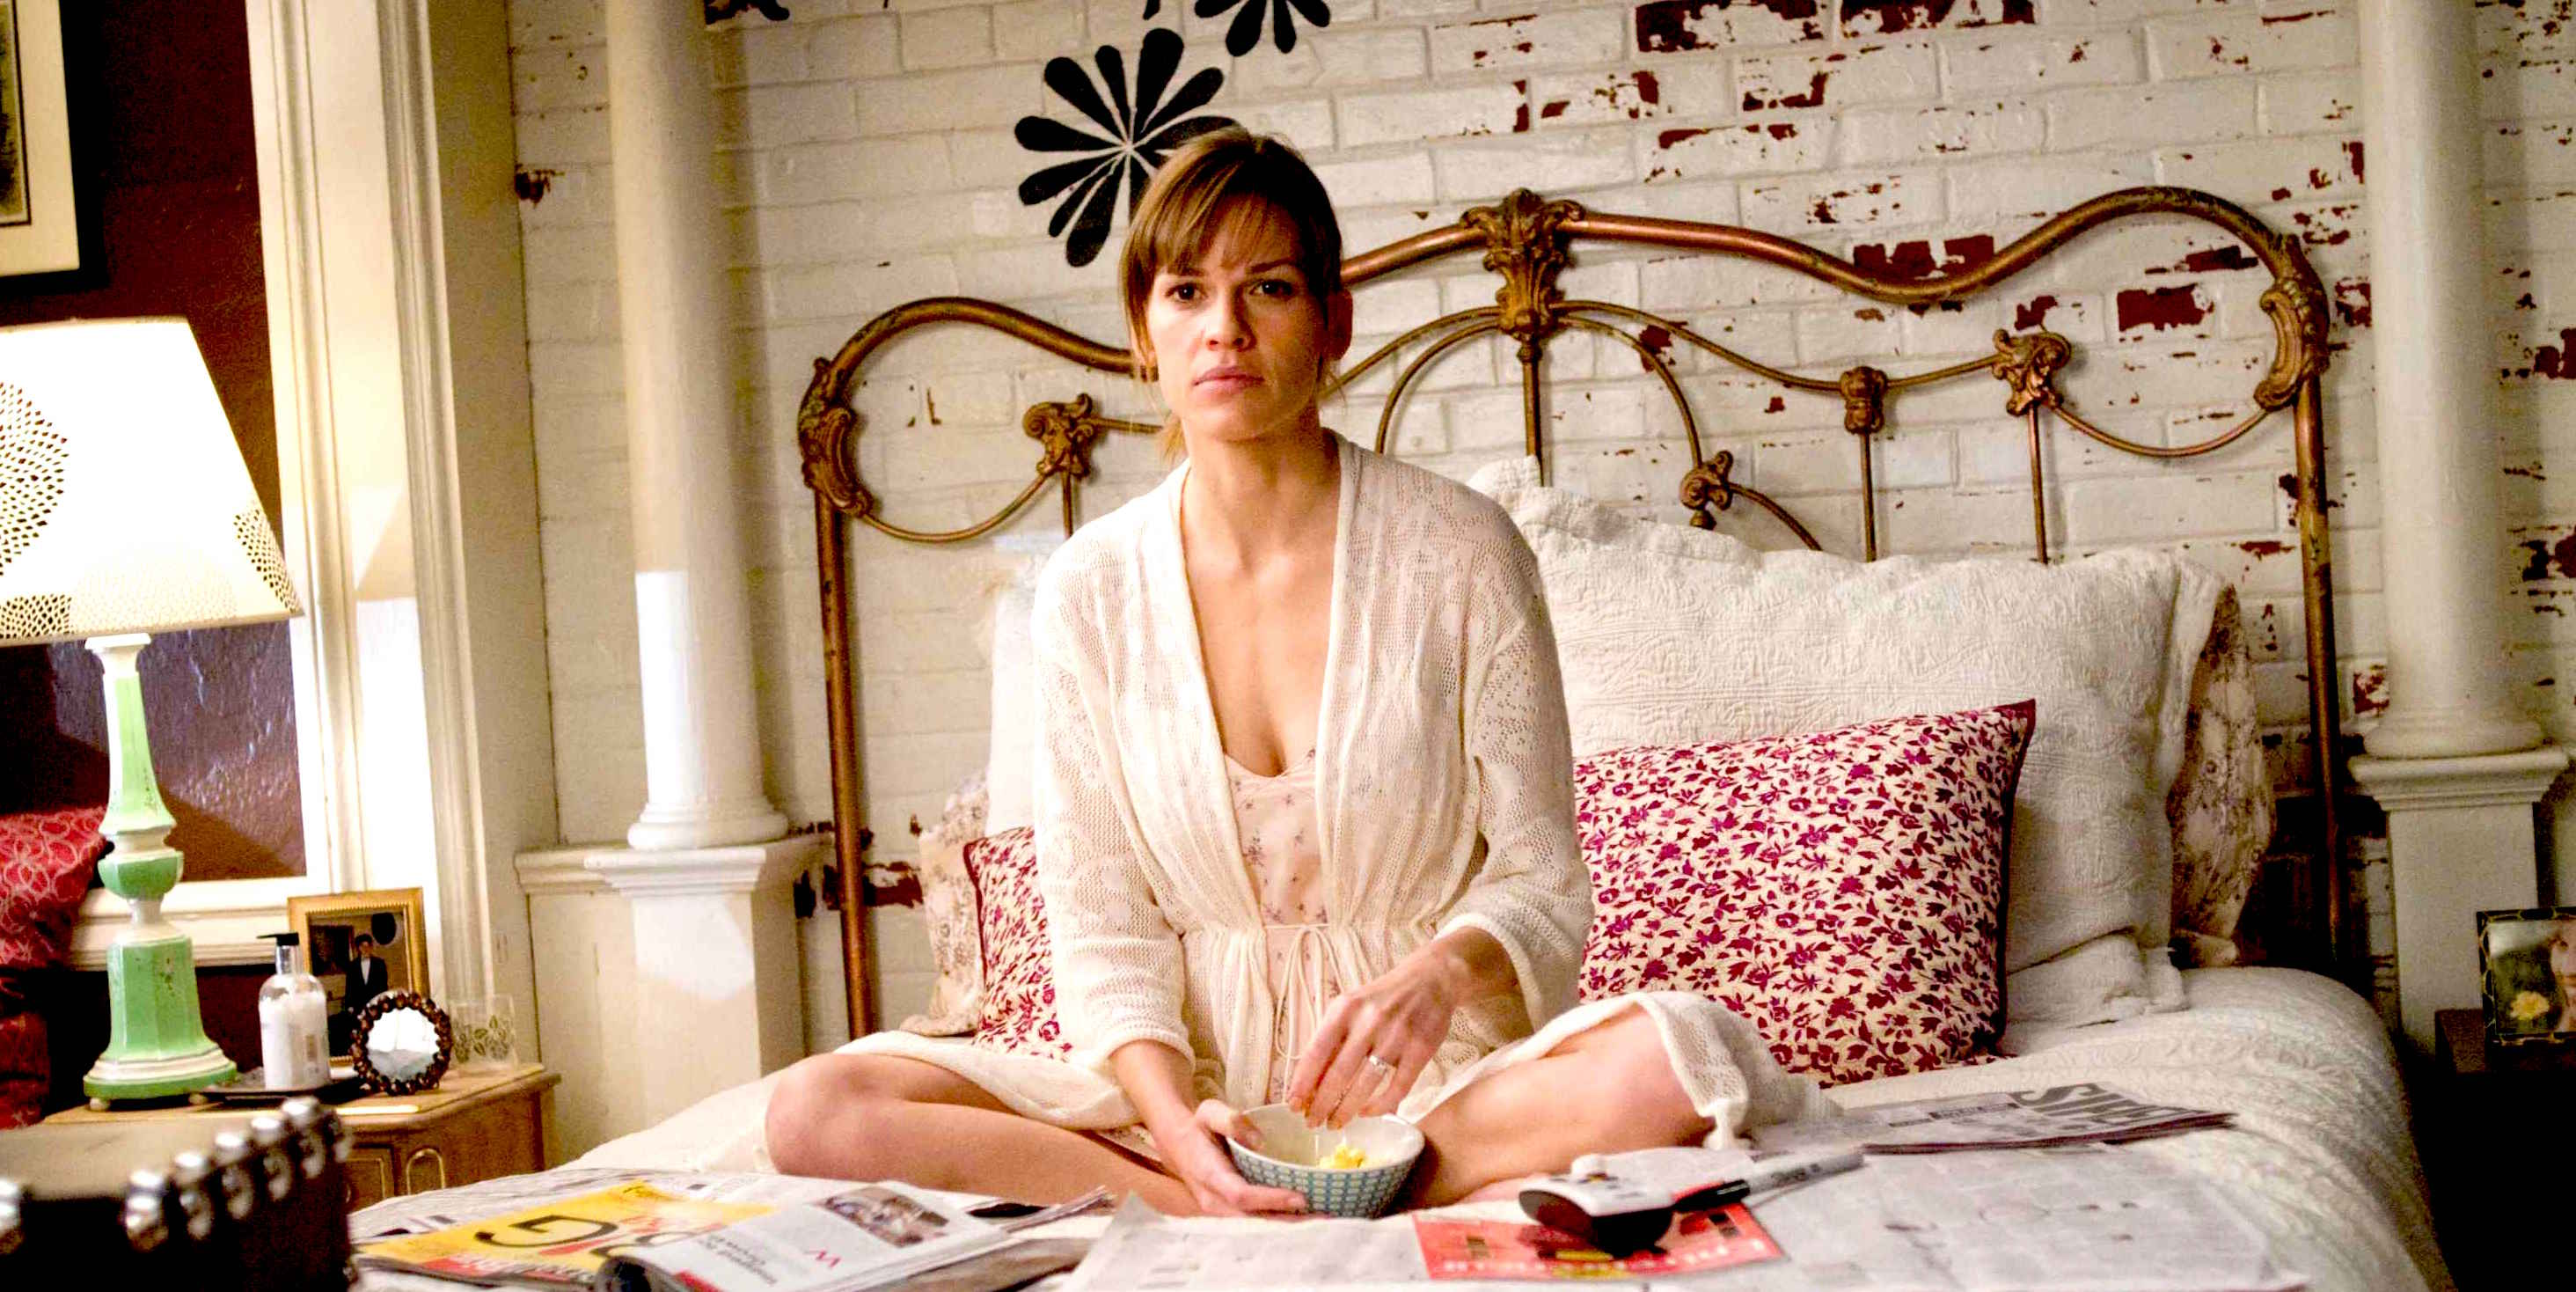 """HILARY SWANK stars as Holly Kennedy in Alcon Entertainment's romantic comedy """"P.S. I Love You,"""" distributed by Warner Bros. Pictures. The film also stars Gerard Butler. PHOTOGRAPHS TO BE USED SOLELY FOR ADVERTISING, PROMOTION, PUBLICITY OR REVIEWS OF THIS SPECIFIC MOTION PICTURE AND TO REMAIN THE PROPERTY OF THE STUDIO. NOT FOR SALE OR REDISTRIBUTION"""